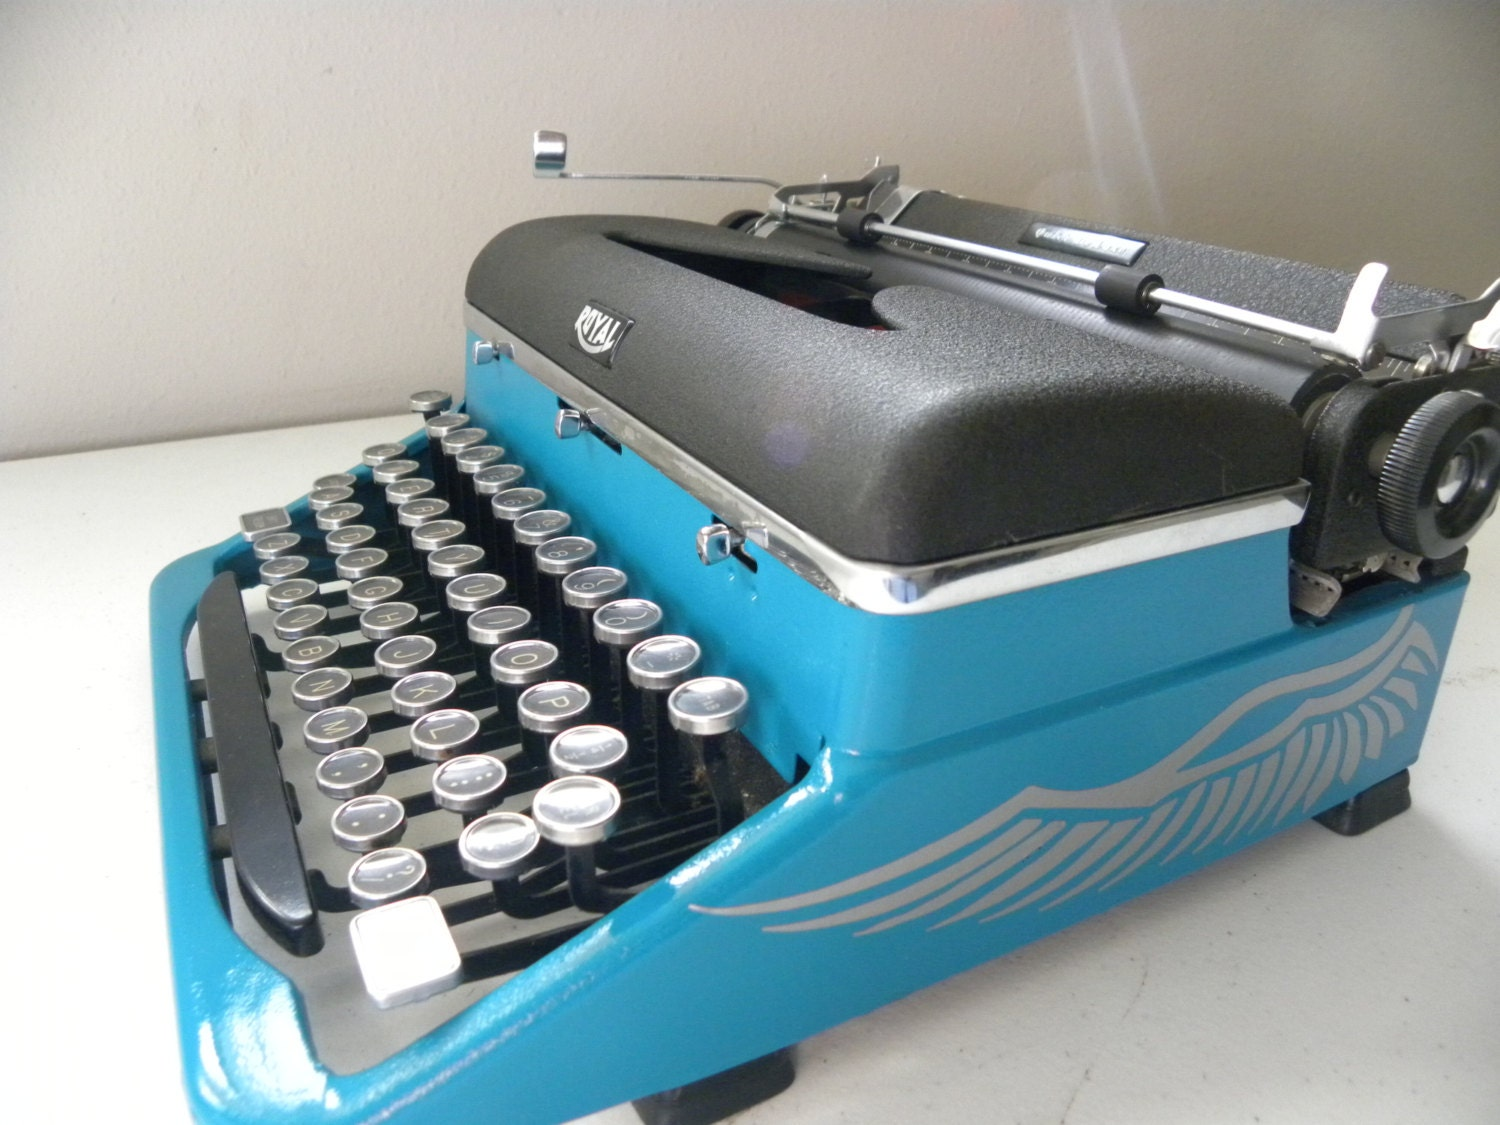 Working Blue Royal Quiet DeLuxe Typewriter - Custom Paint - Winged Series - BlackInkRevival